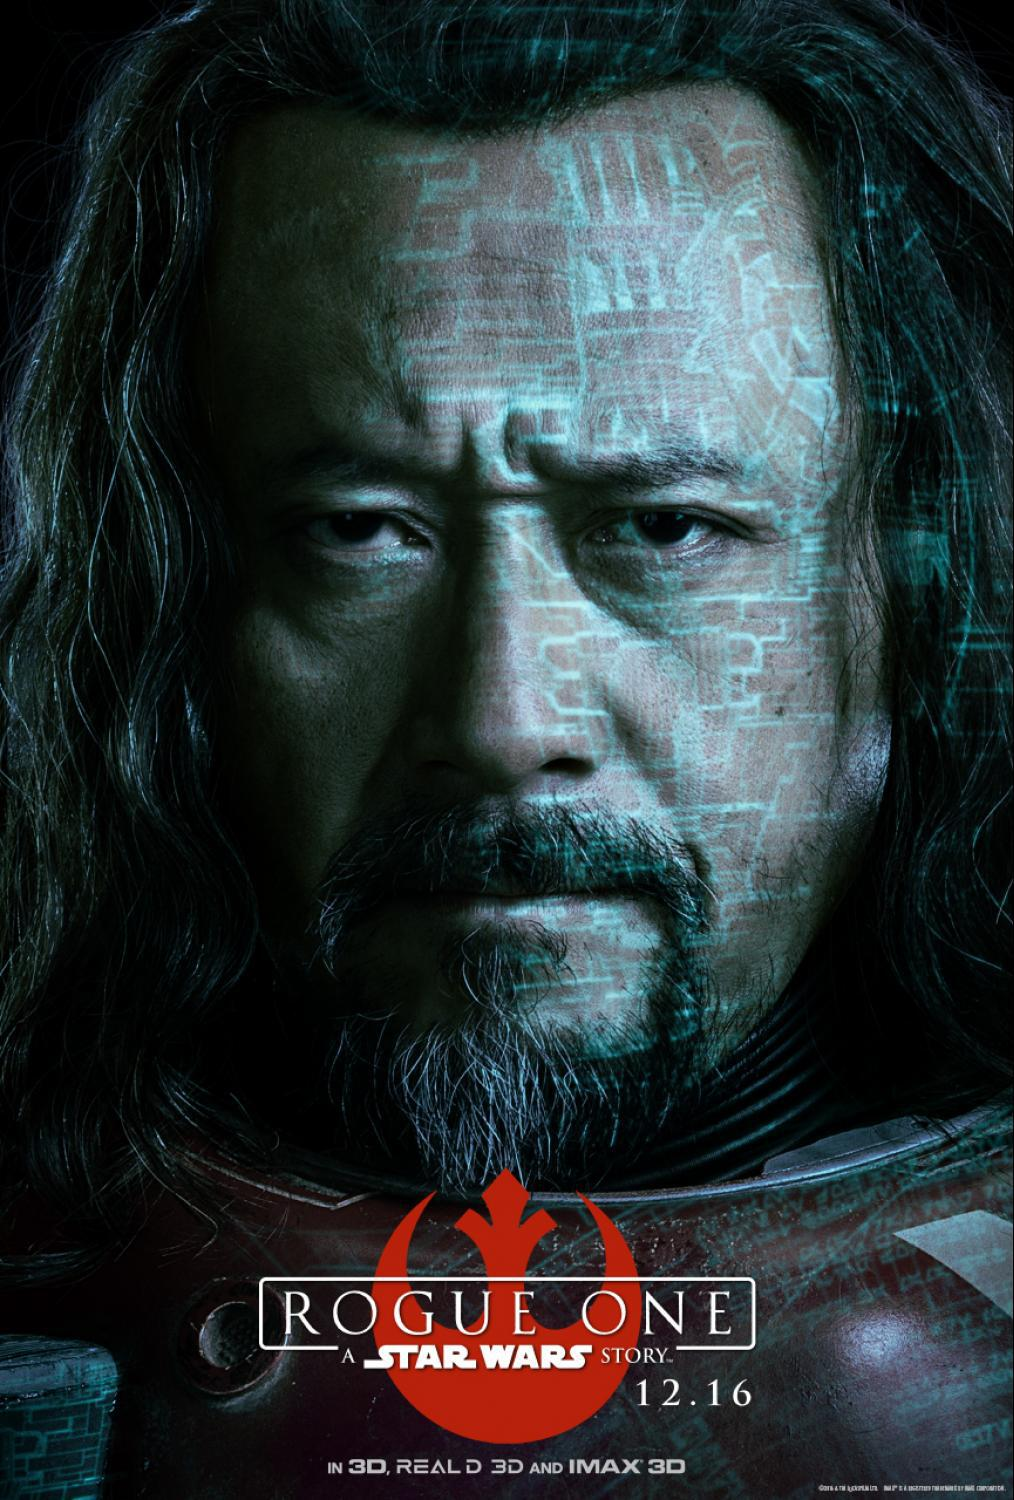 First Look - Rogue One: A Star Wars Story Character Posters Now Available